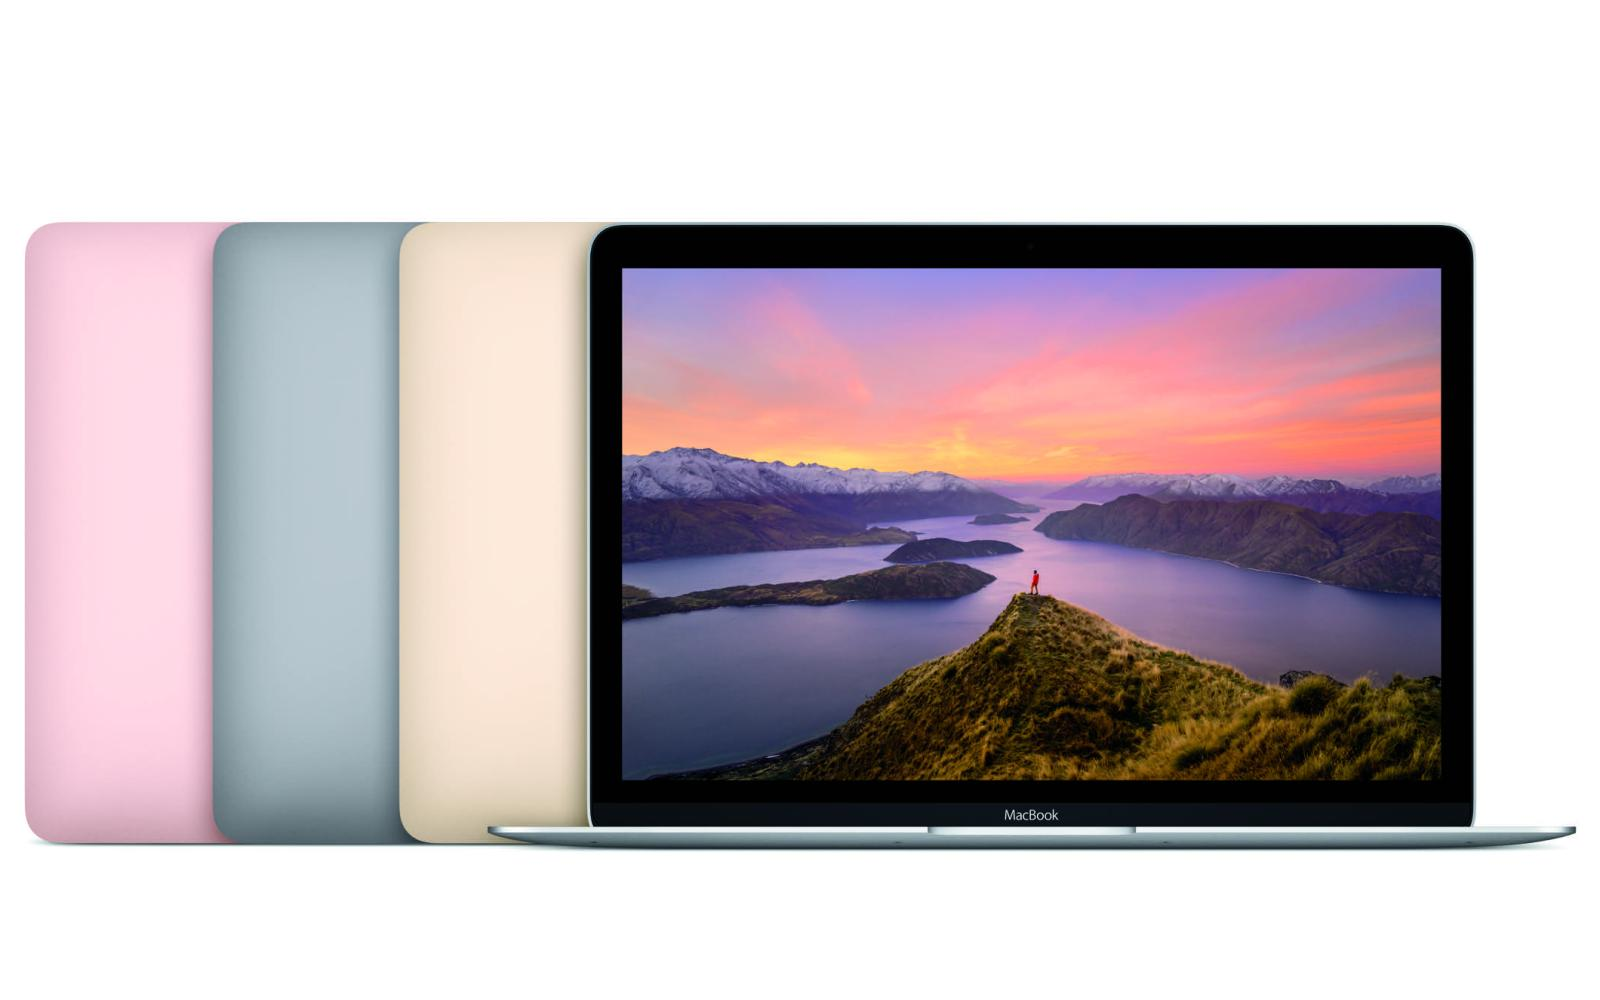 Here's how Apple's refreshed 12-inch MacBook compares to last year's model